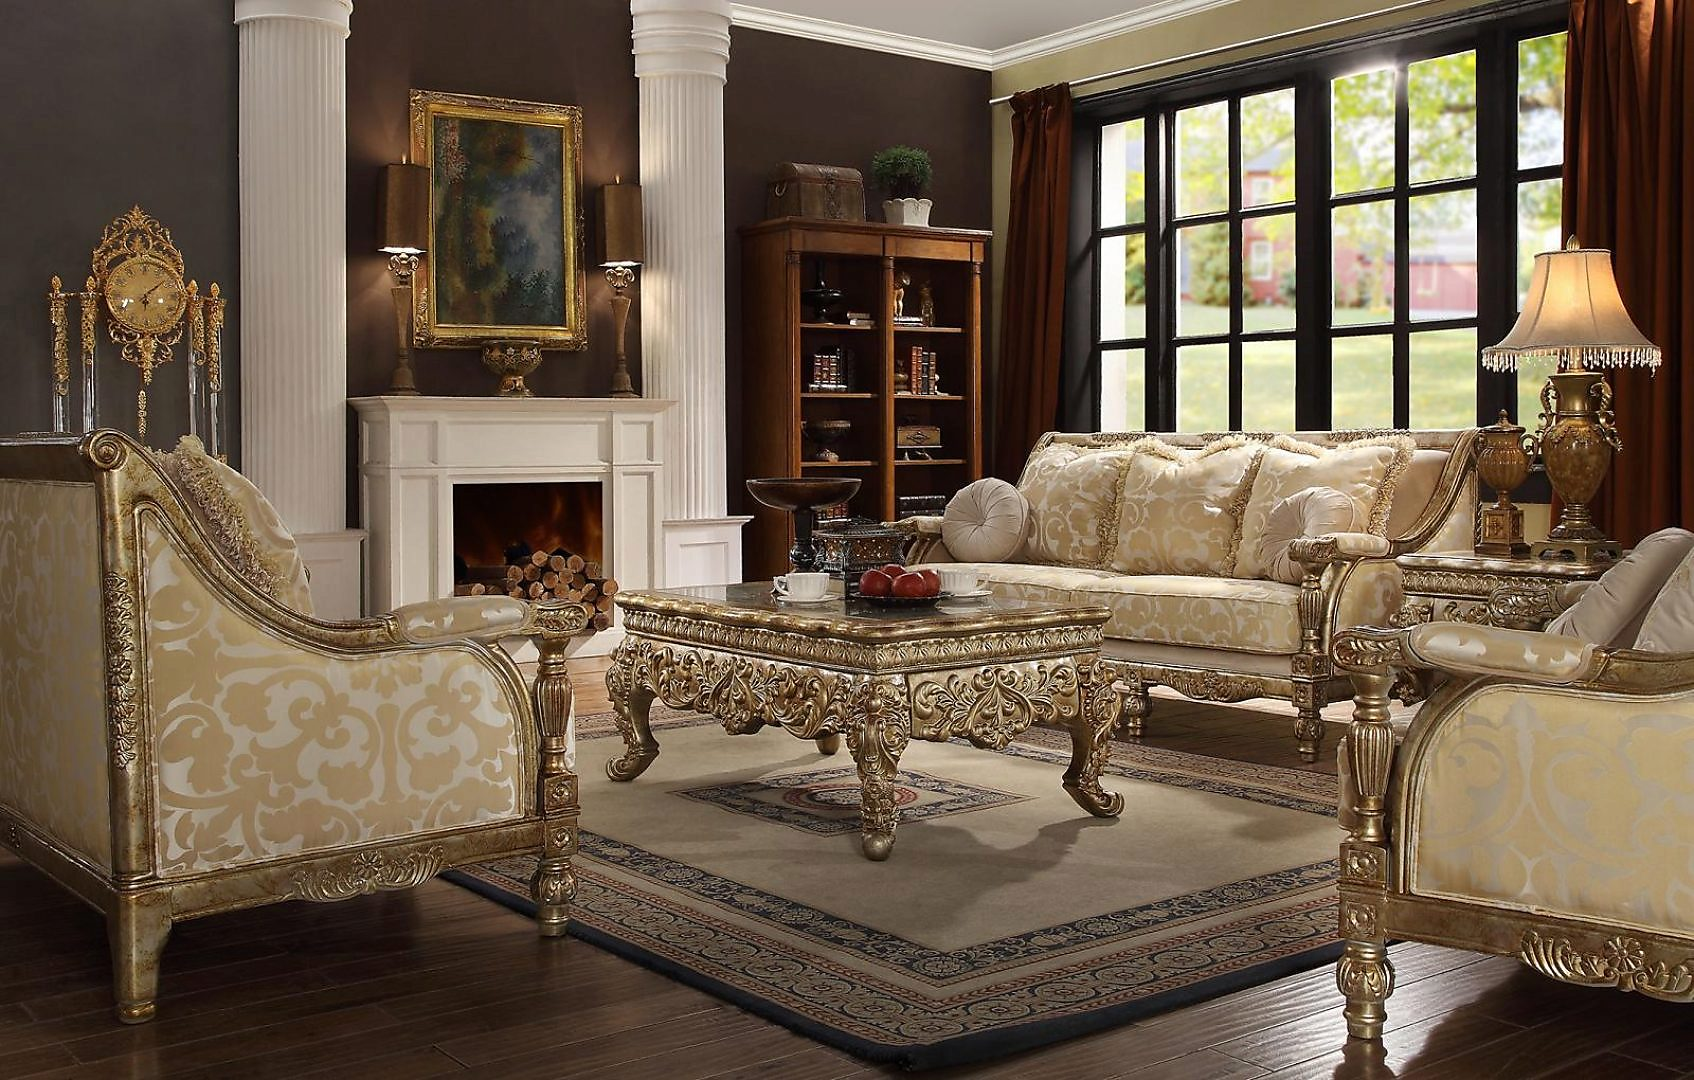 Traditional Hd-205 Sofa Loveseat Chair Coffee Table End Table 6Pcs by Homey Design